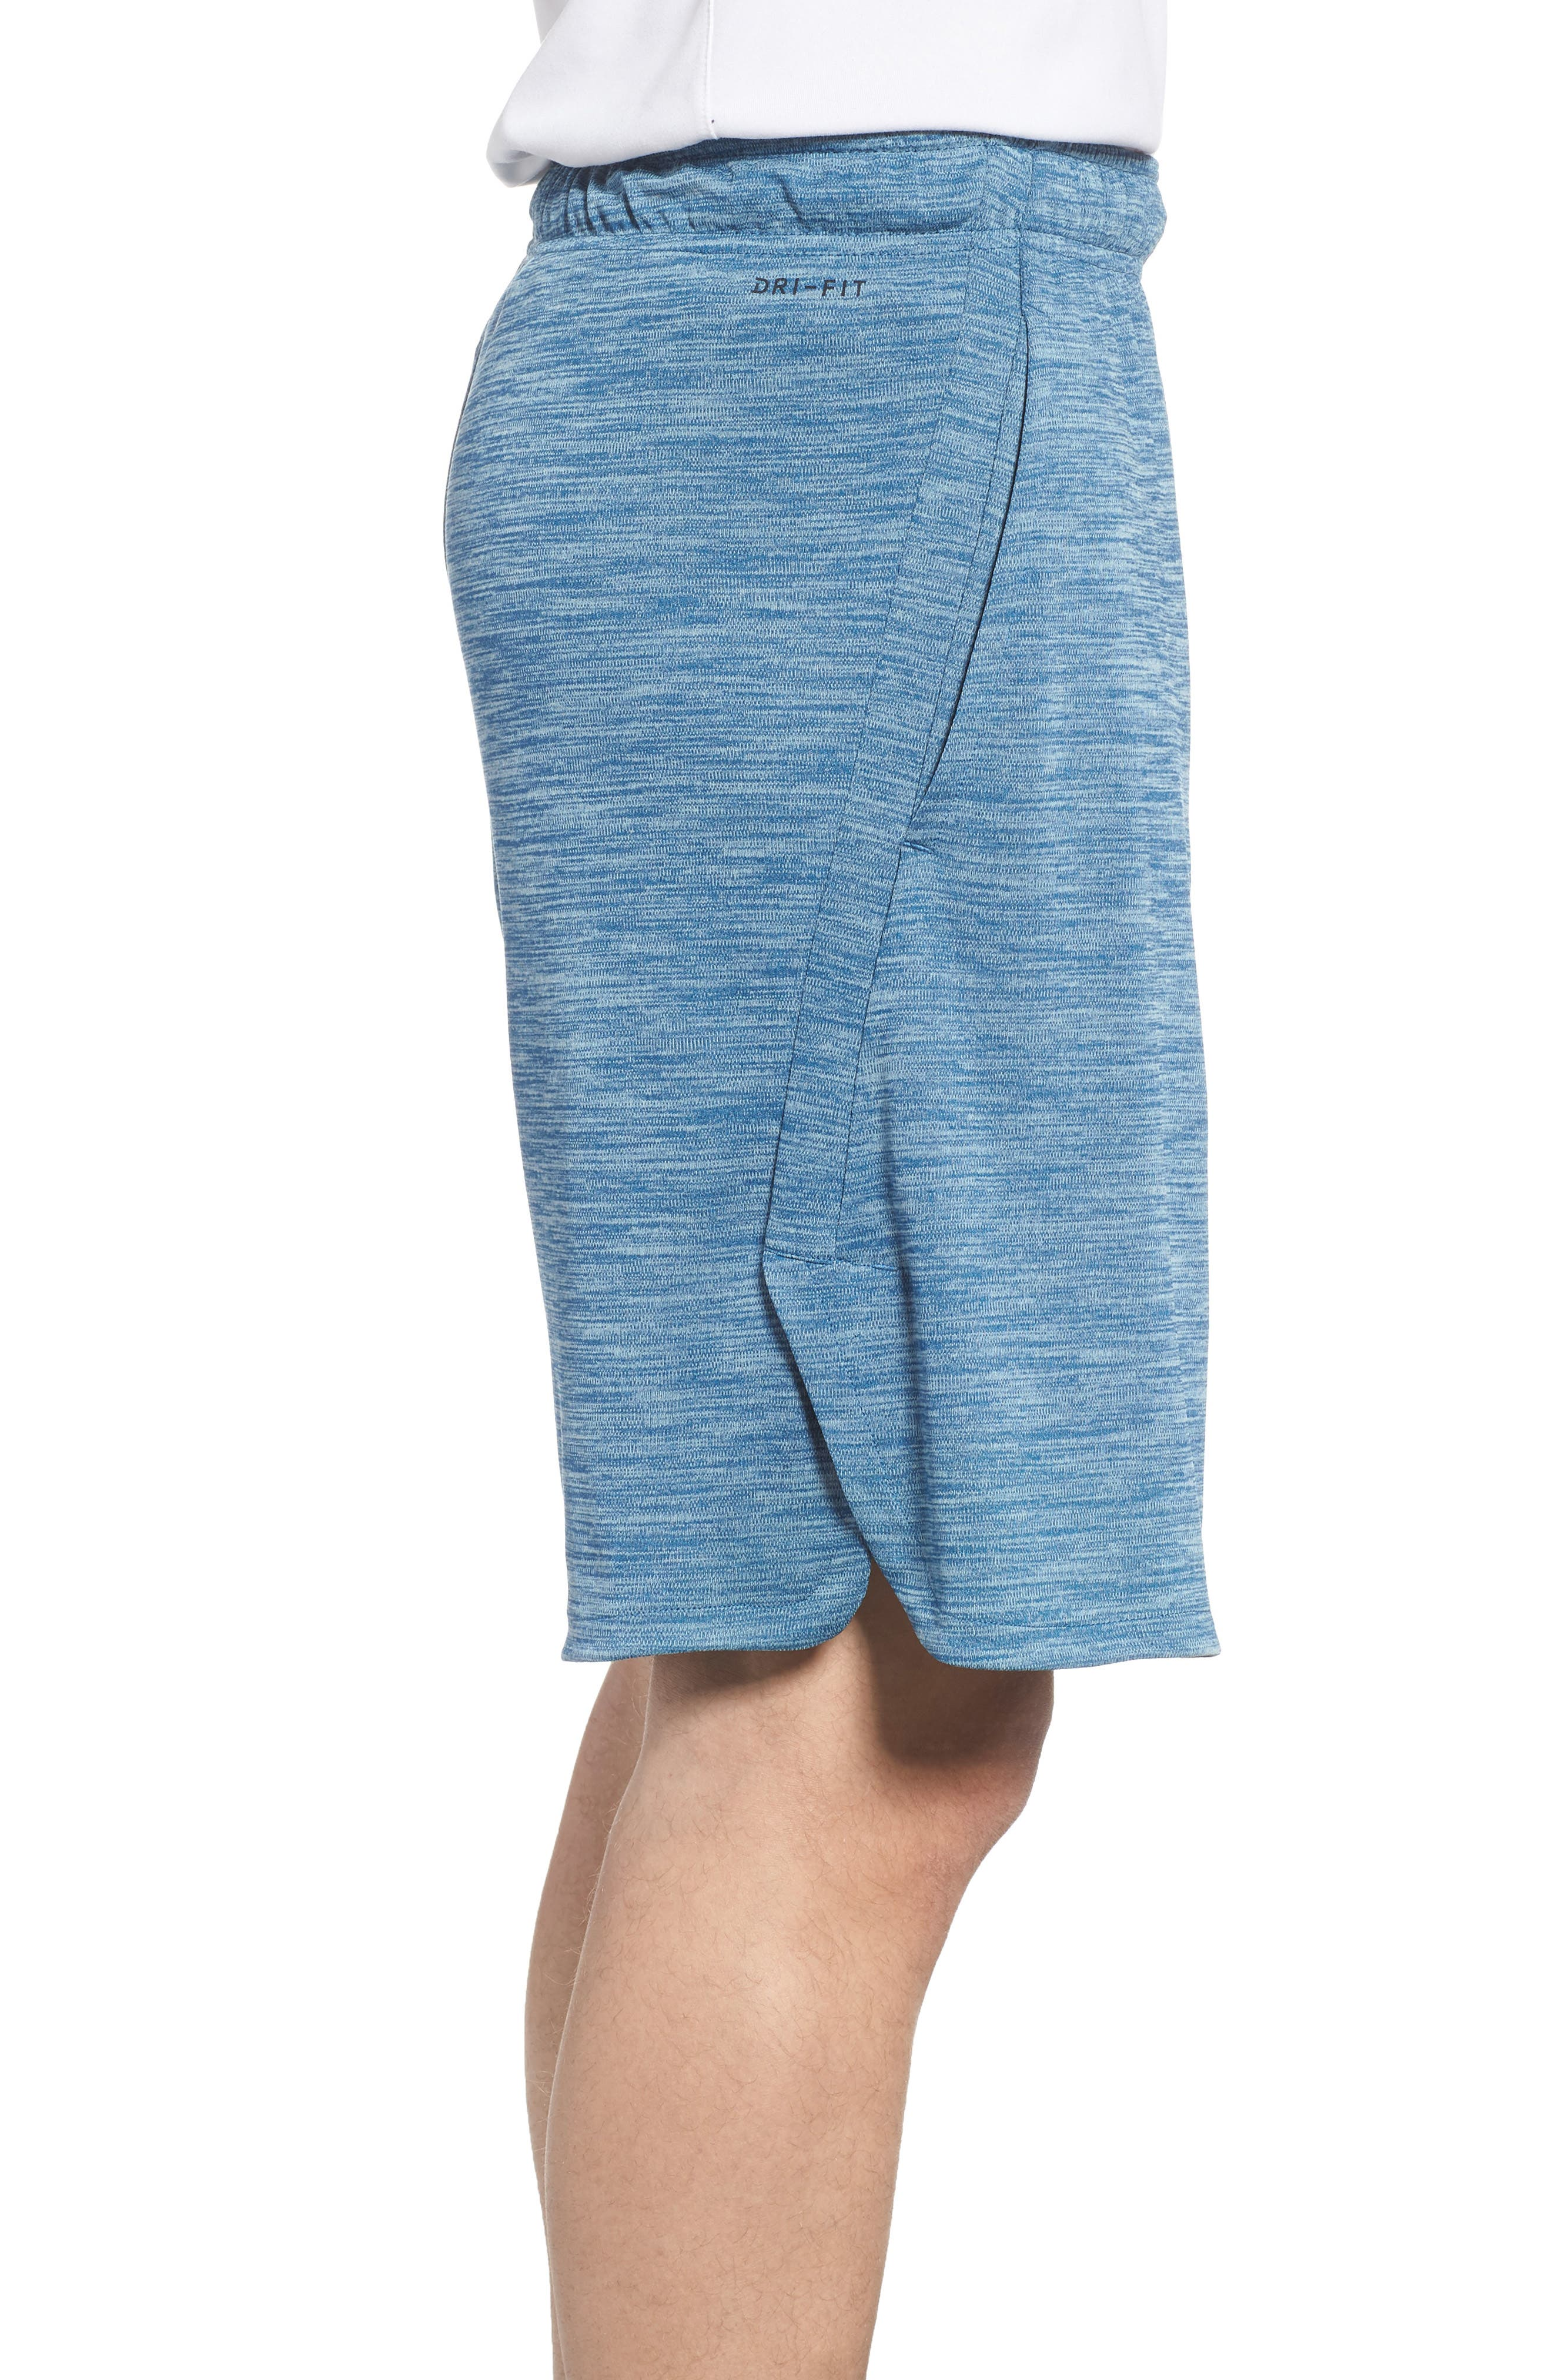 Dry Training Shorts,                             Alternate thumbnail 3, color,                             Blue Force/ Black